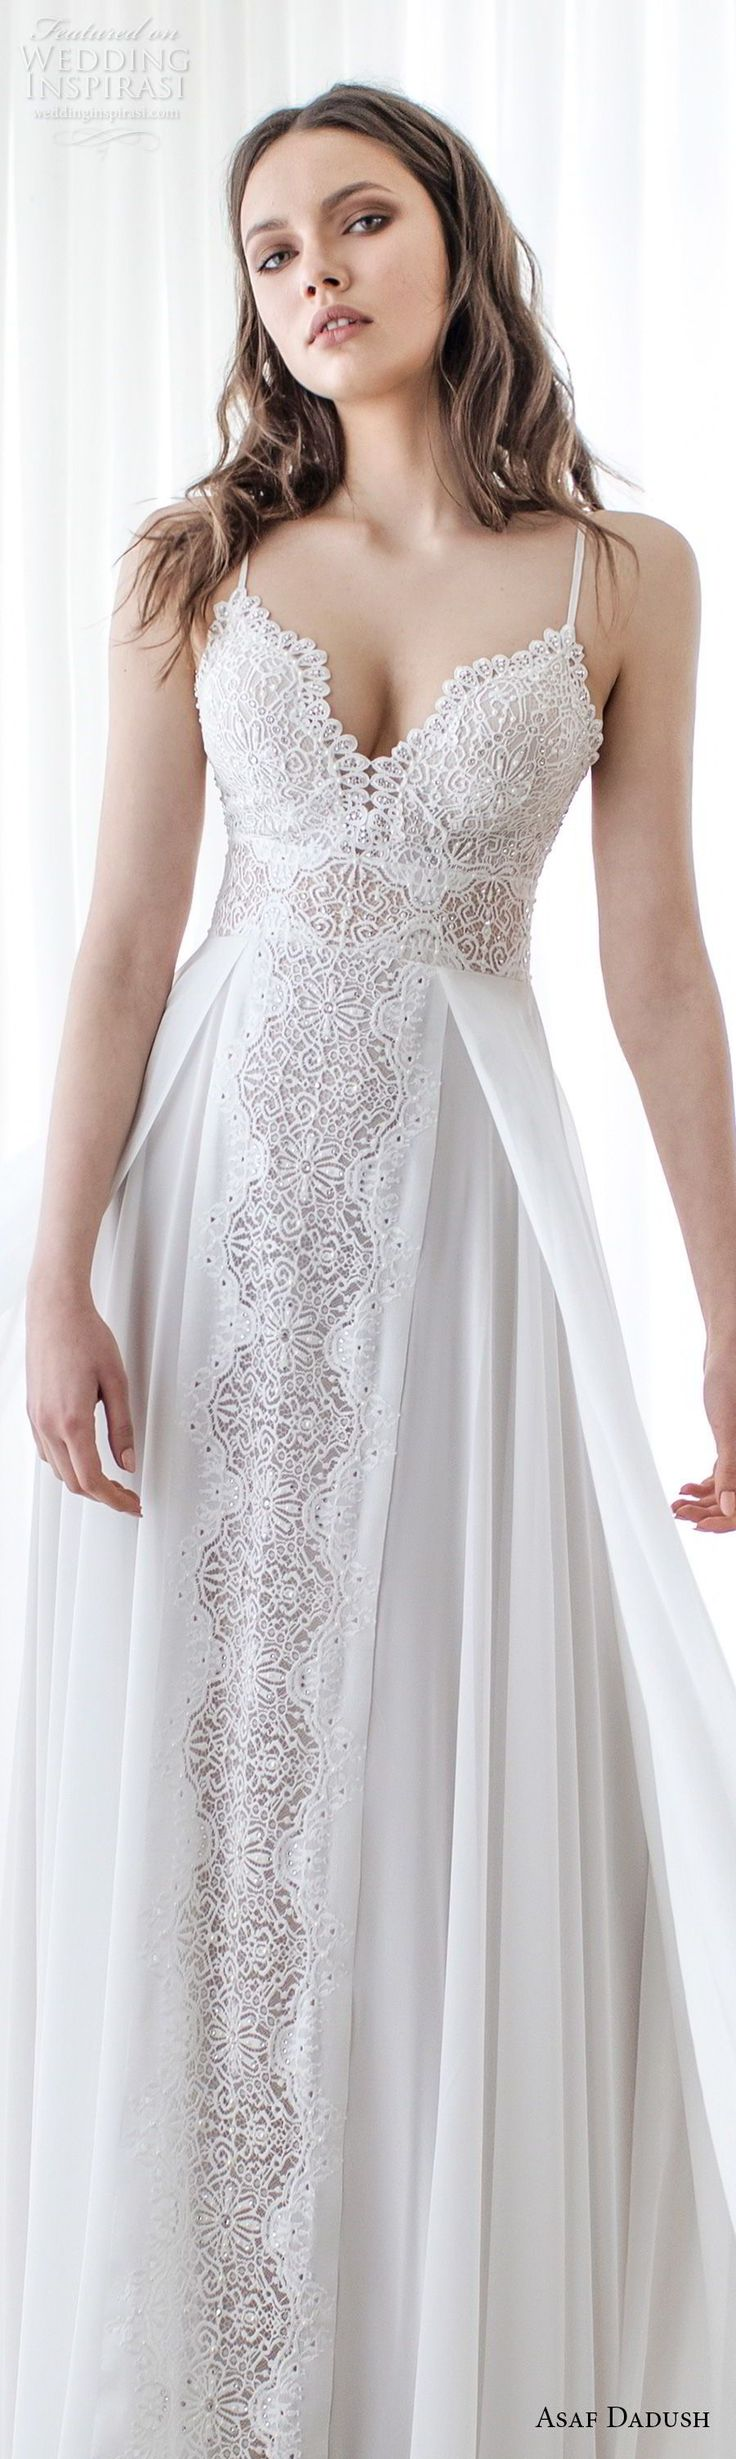 Lace over tulle wedding dress january 2019  best ドレス images on Pinterest  Short wedding gowns